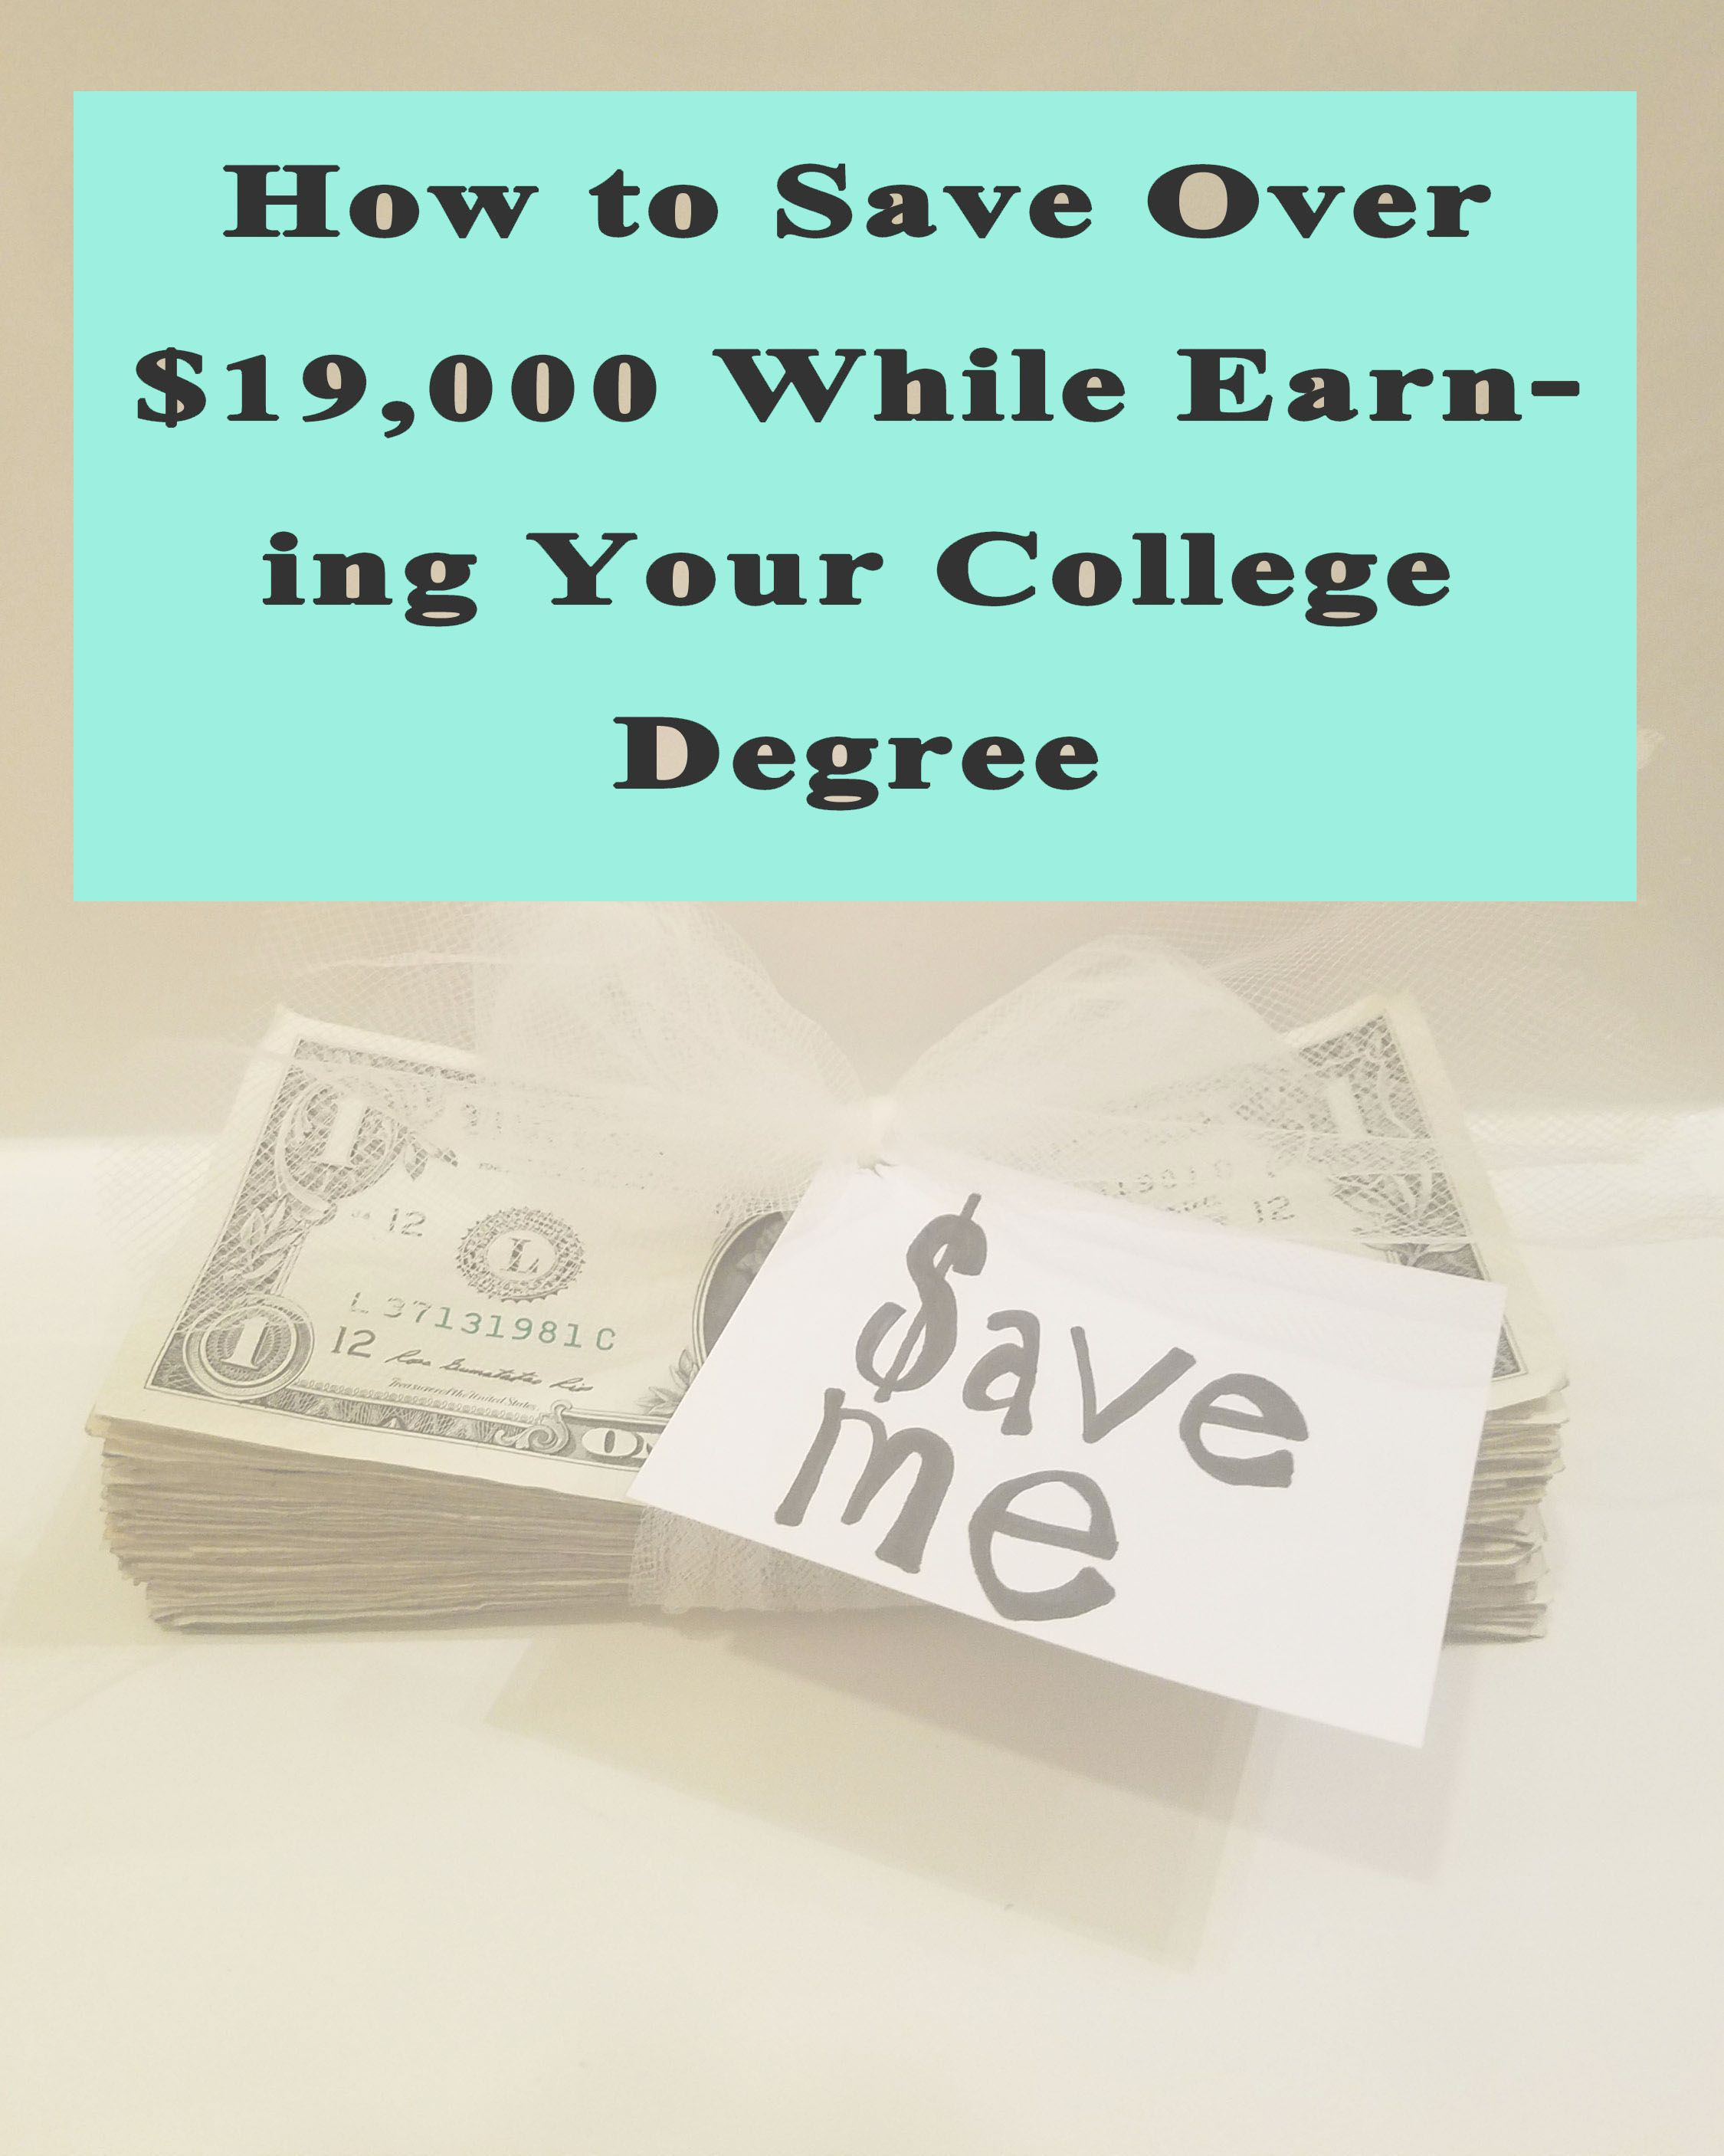 Hands down the best post I've read on saving money on an education.